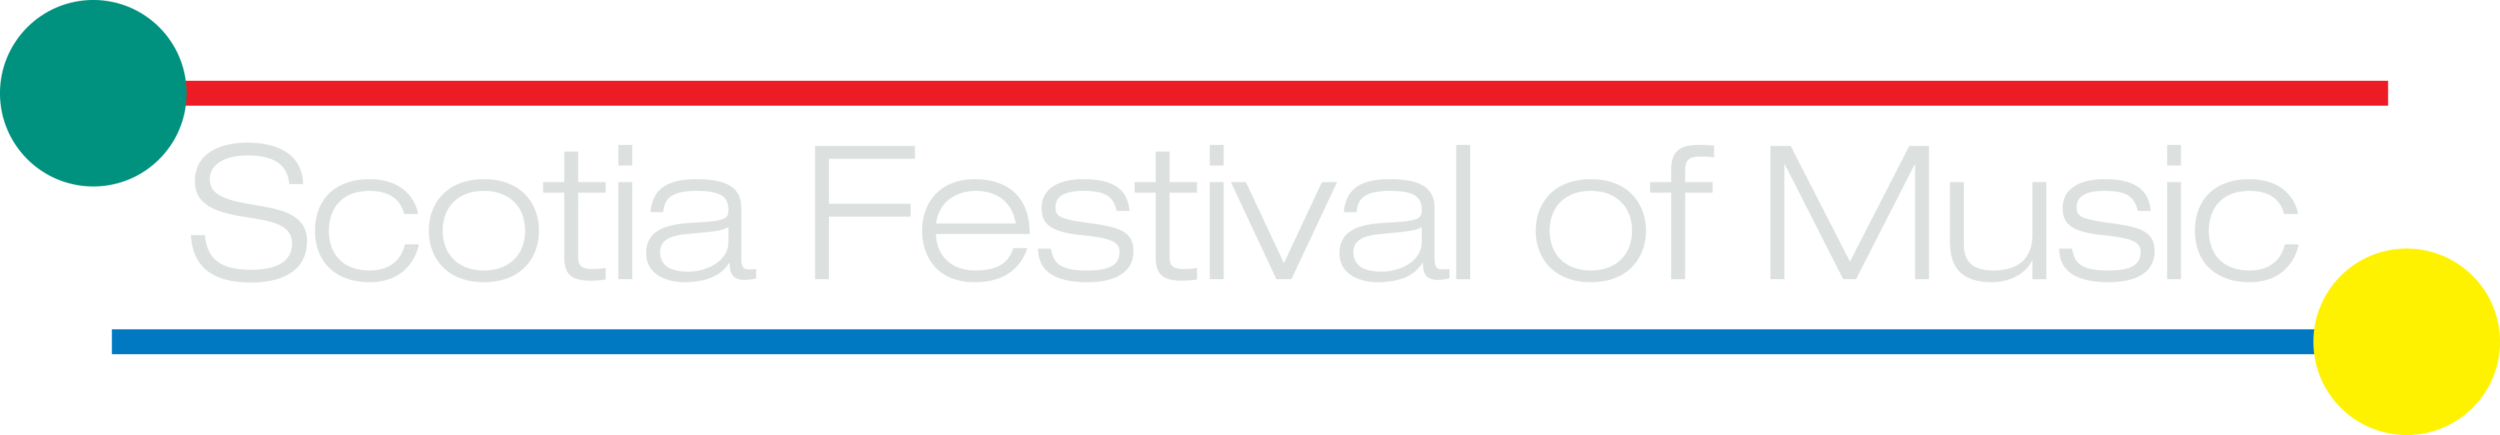 ScotiaFestival_logo_colour_3000px_white.png